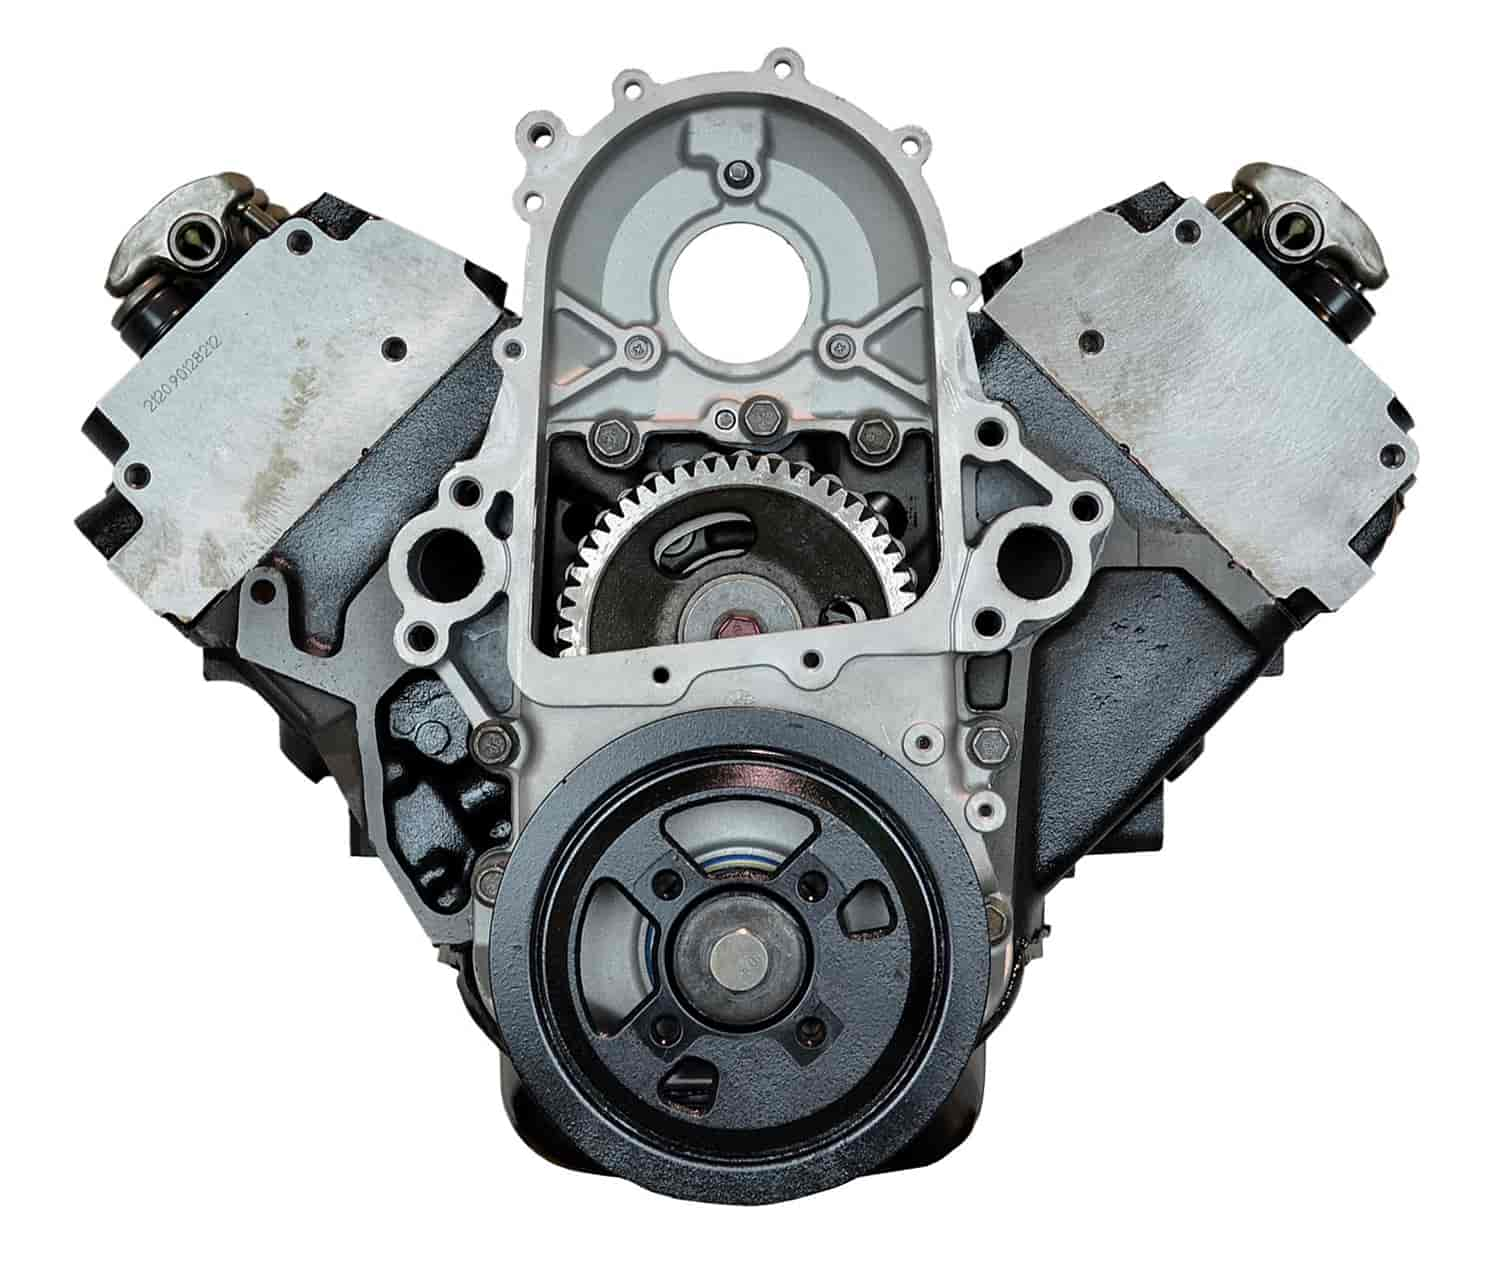 ATK Engines DCT4: Remanufactured Crate Engine For 1994